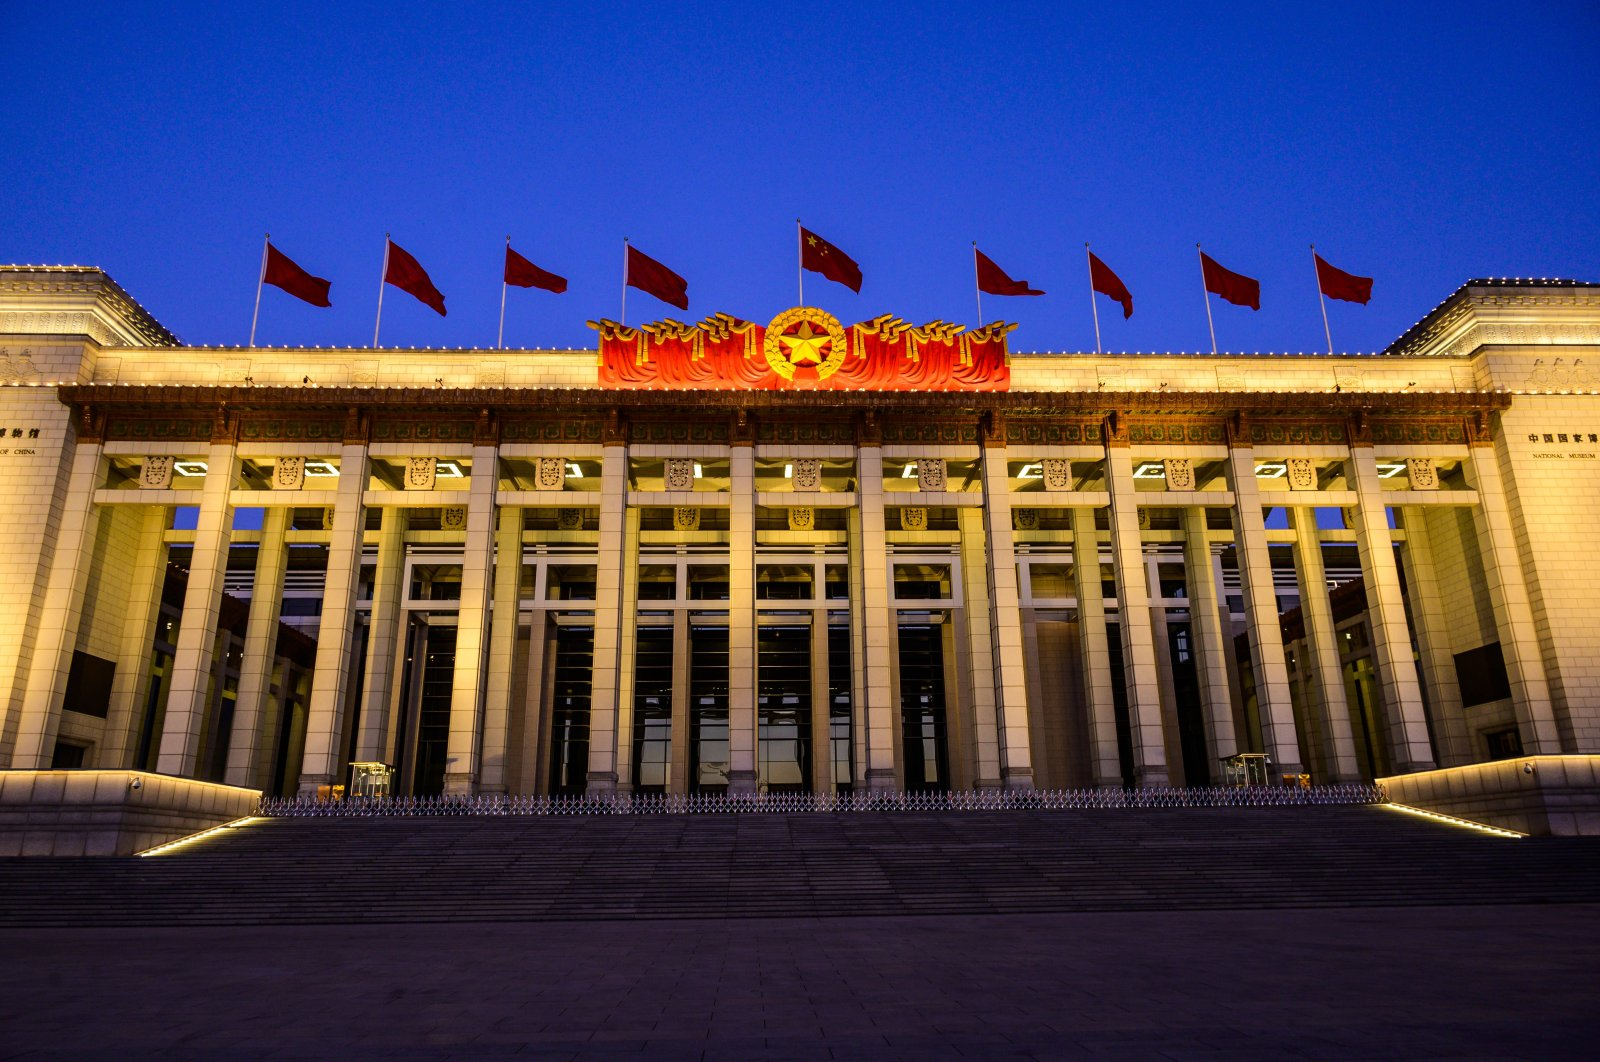 A general view of the National Museum of China at Tiananmen Square on the last day of the Spring Festival holiday, Beijing, China. (Photo by Getty Images)